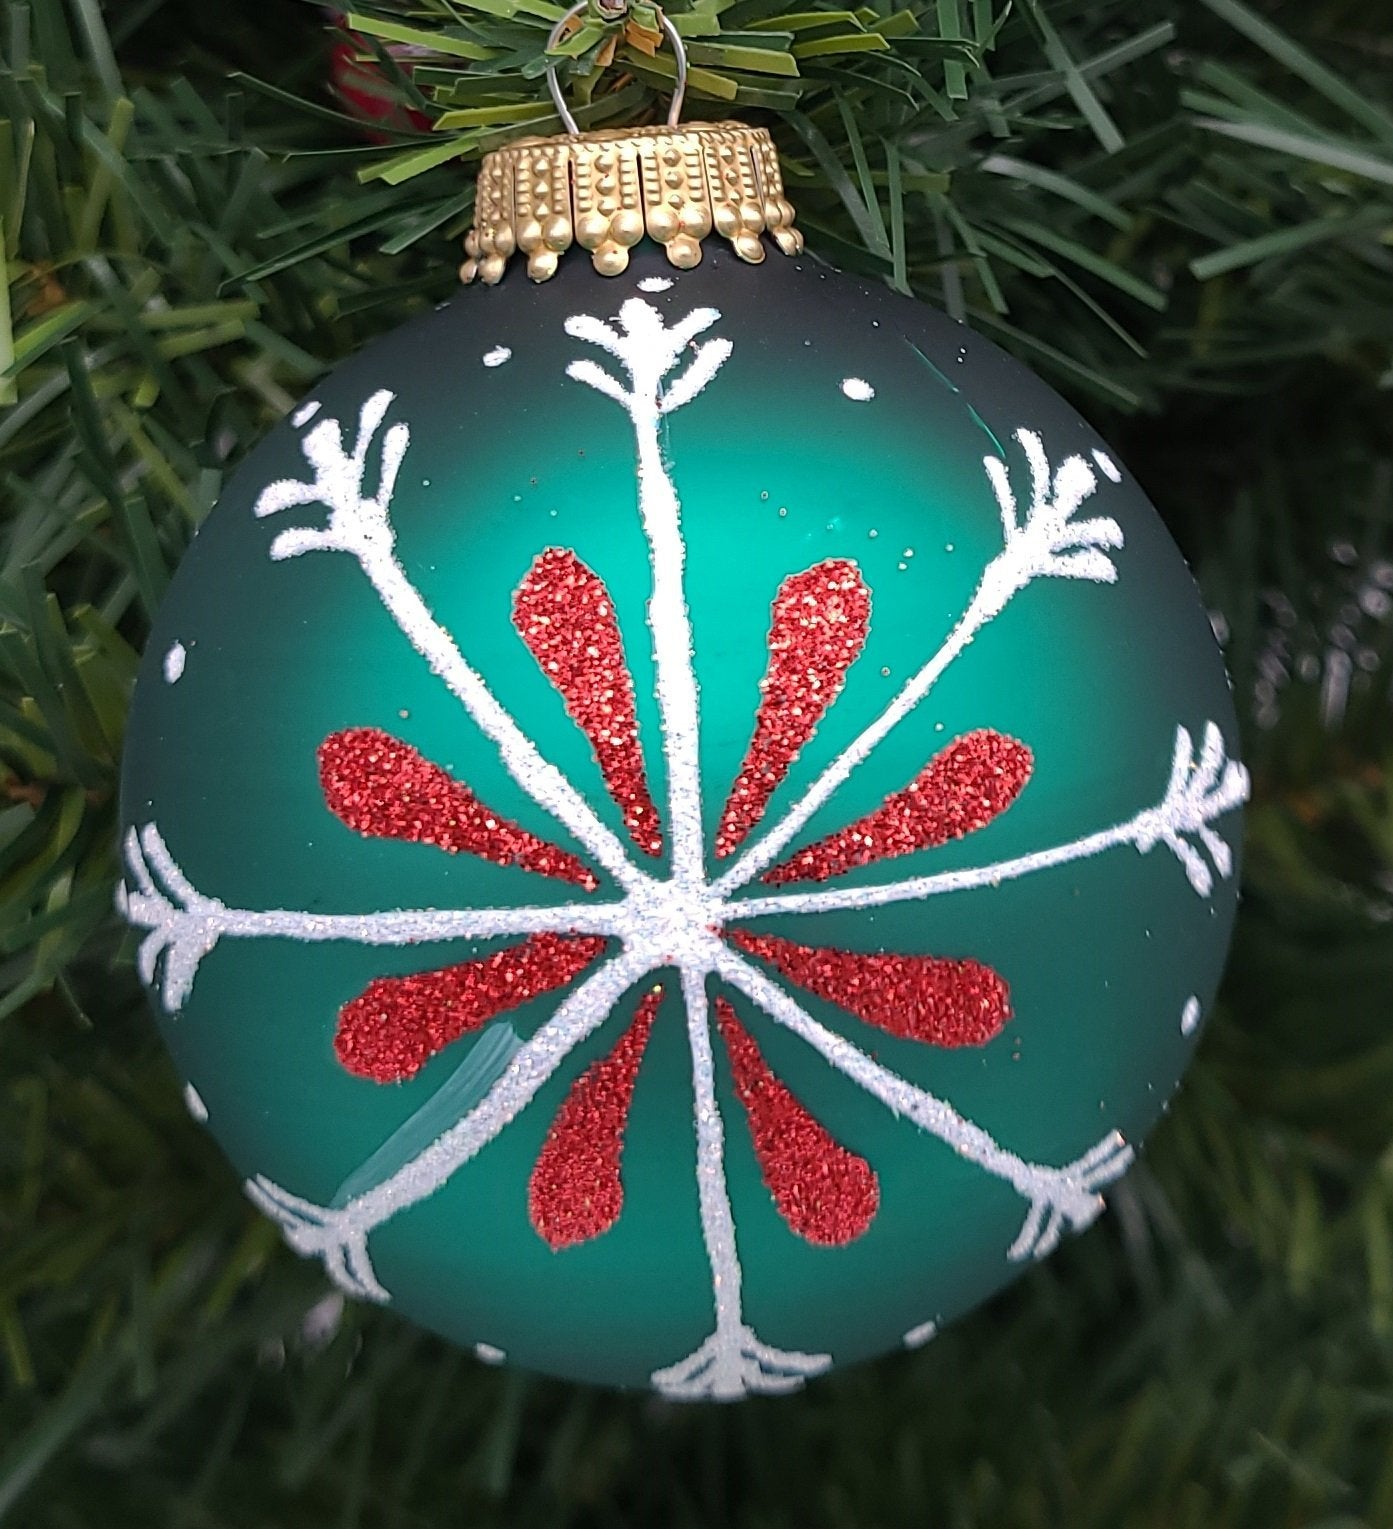 "Glass Classic 3"" Green Bauble with With Snowflake and Red Accents Ornament - Schmidt Christmas Market Christmas Decoration"